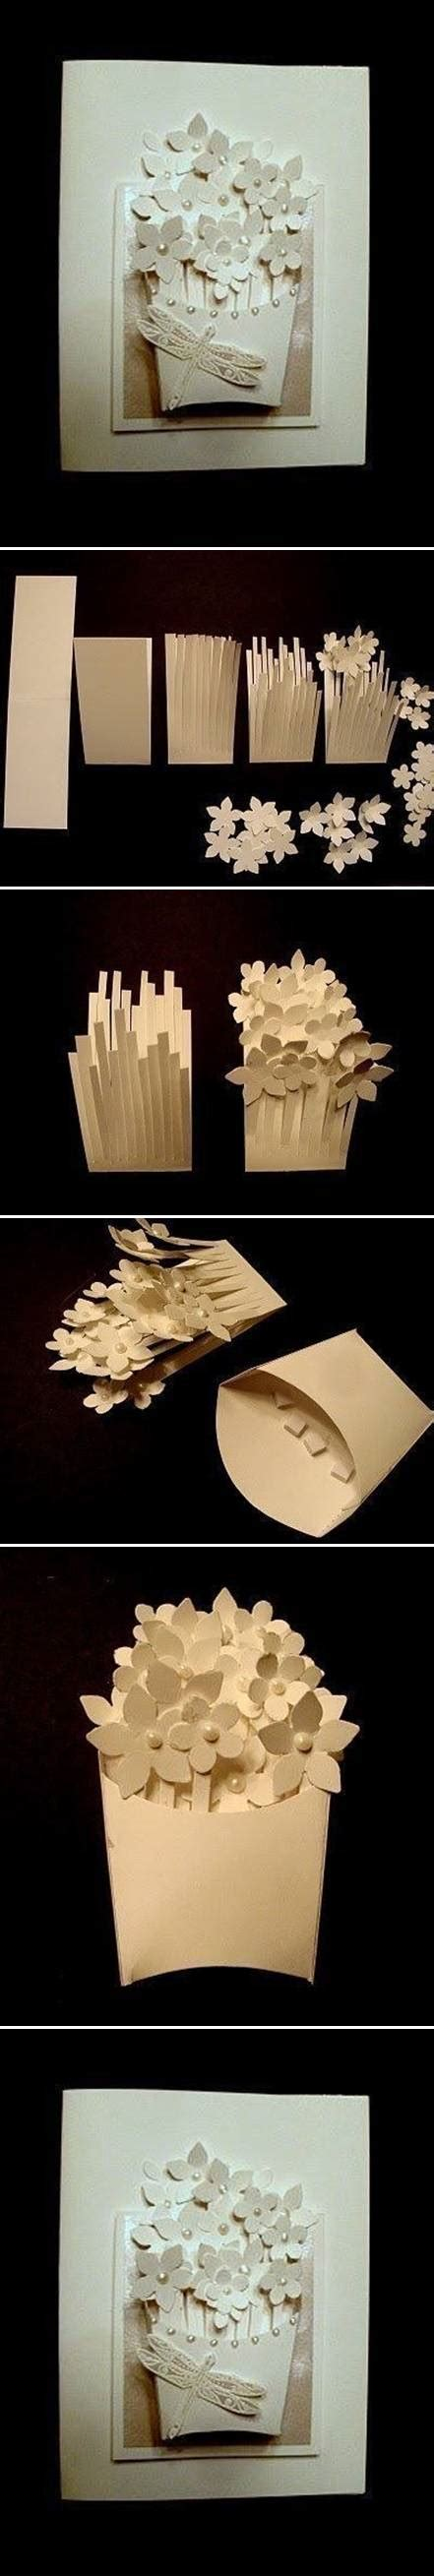 how to make a flower card how to make a basket of flower card step by step diy